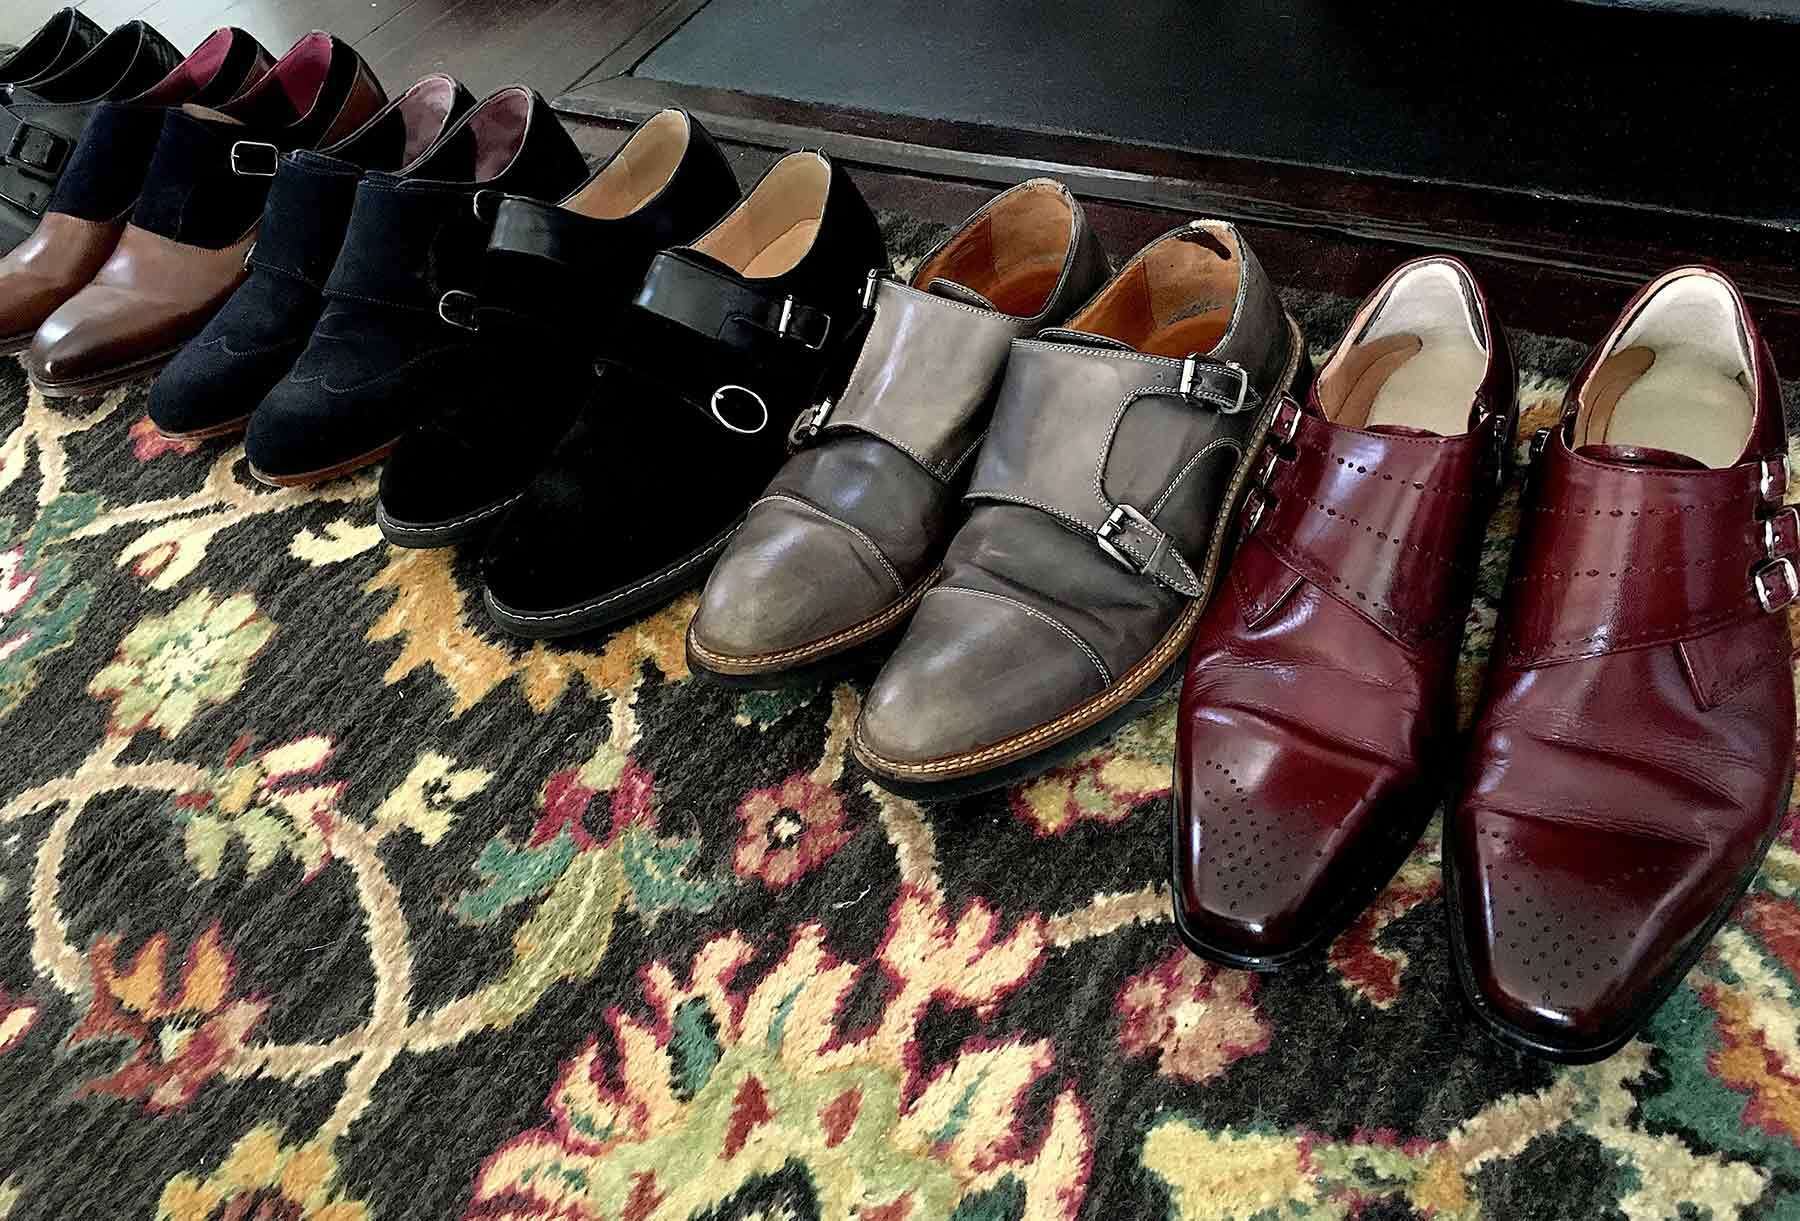 A row of mens shoes lined up on a flowery pattern rug